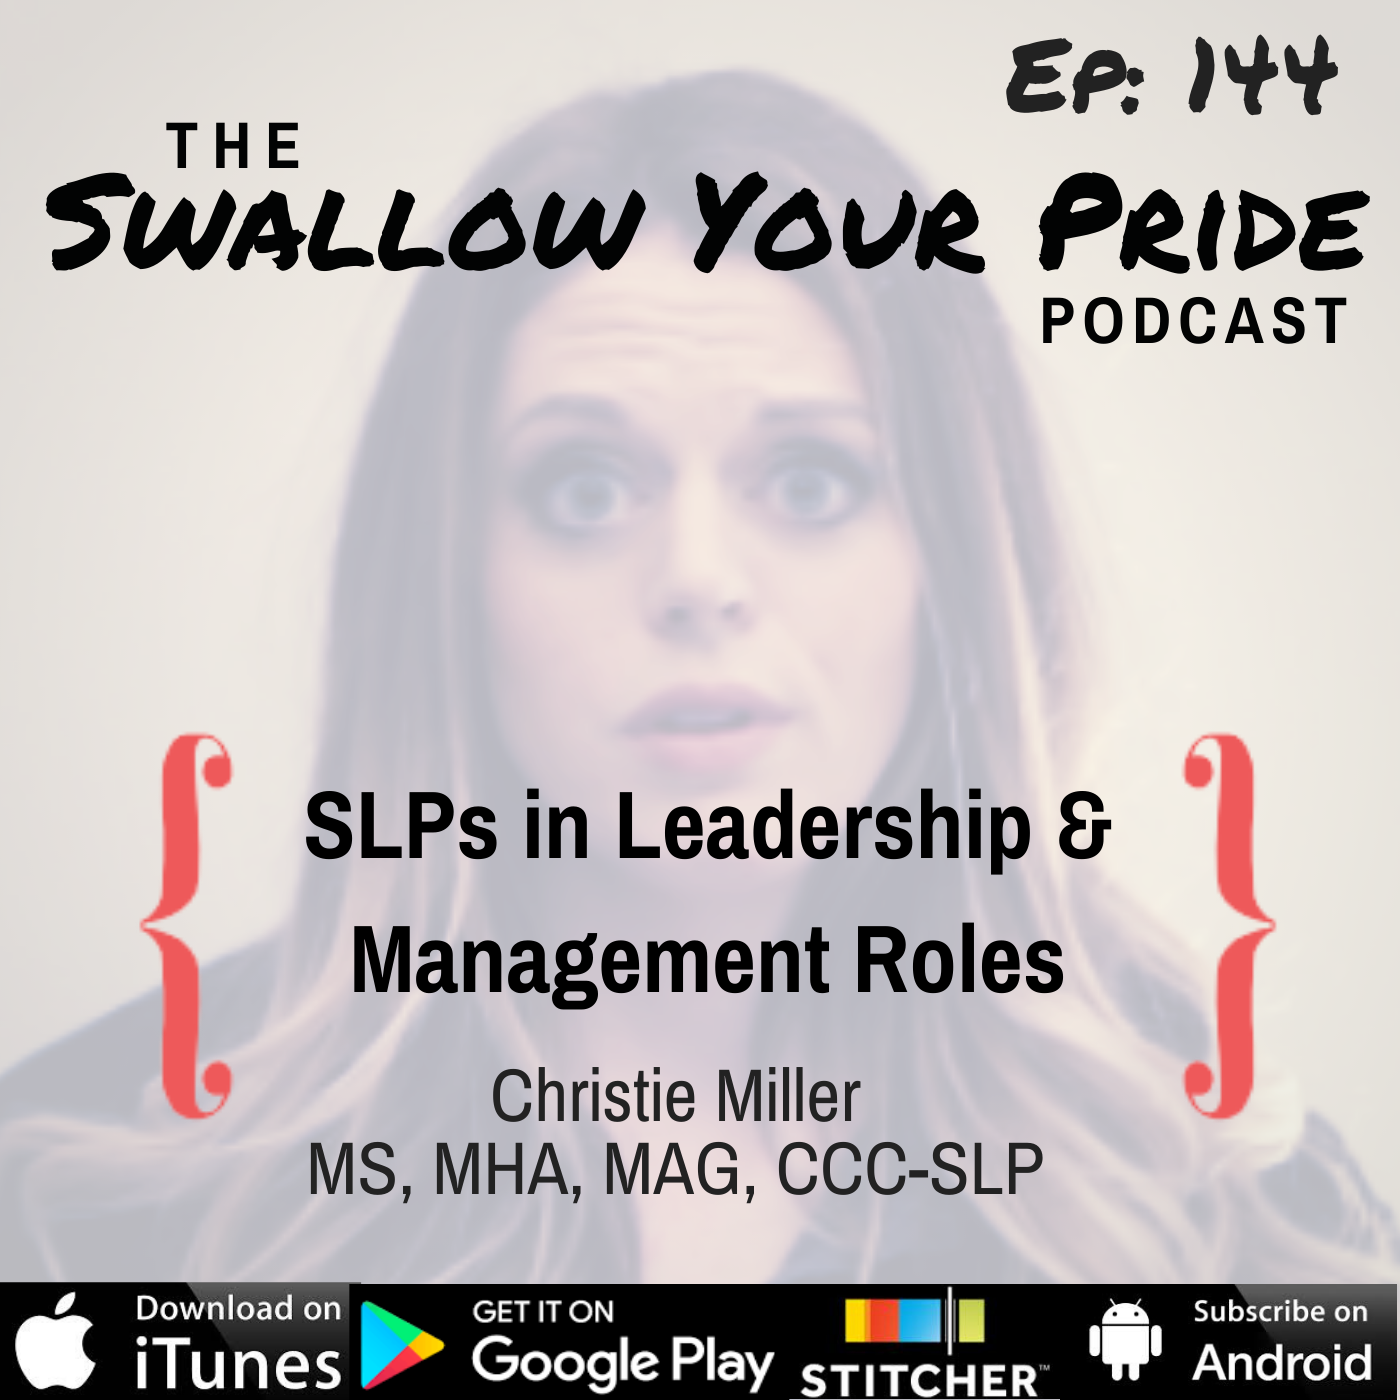 144 – Christie Miller MS, MHA, MAG, CCC-SLP – SLPs in Leadership & Management Roles